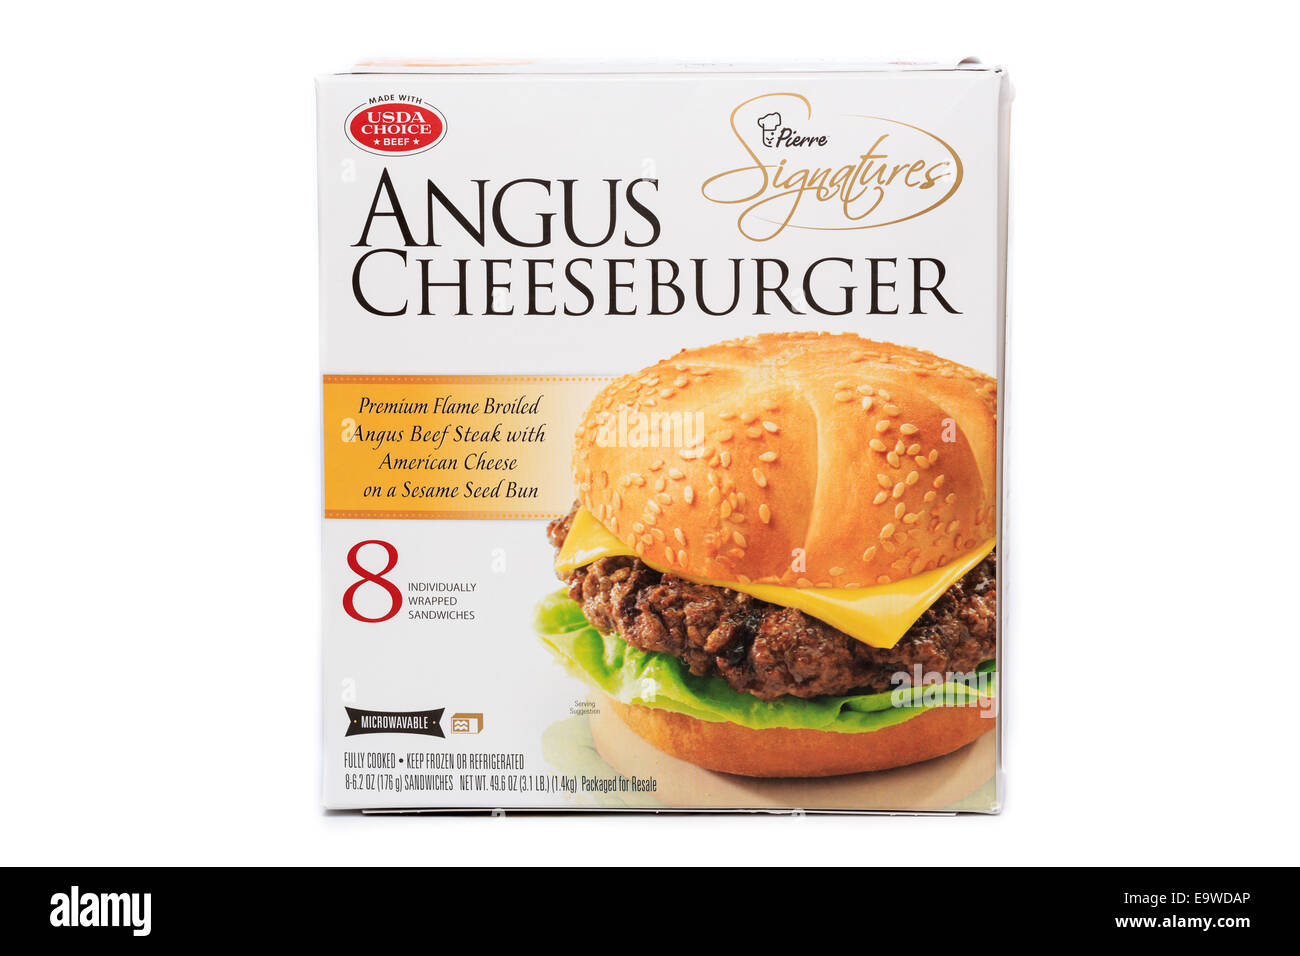 Costco bulk box of Pierre Signatures brand Angus Cheeseburger ready meal - Stock Image